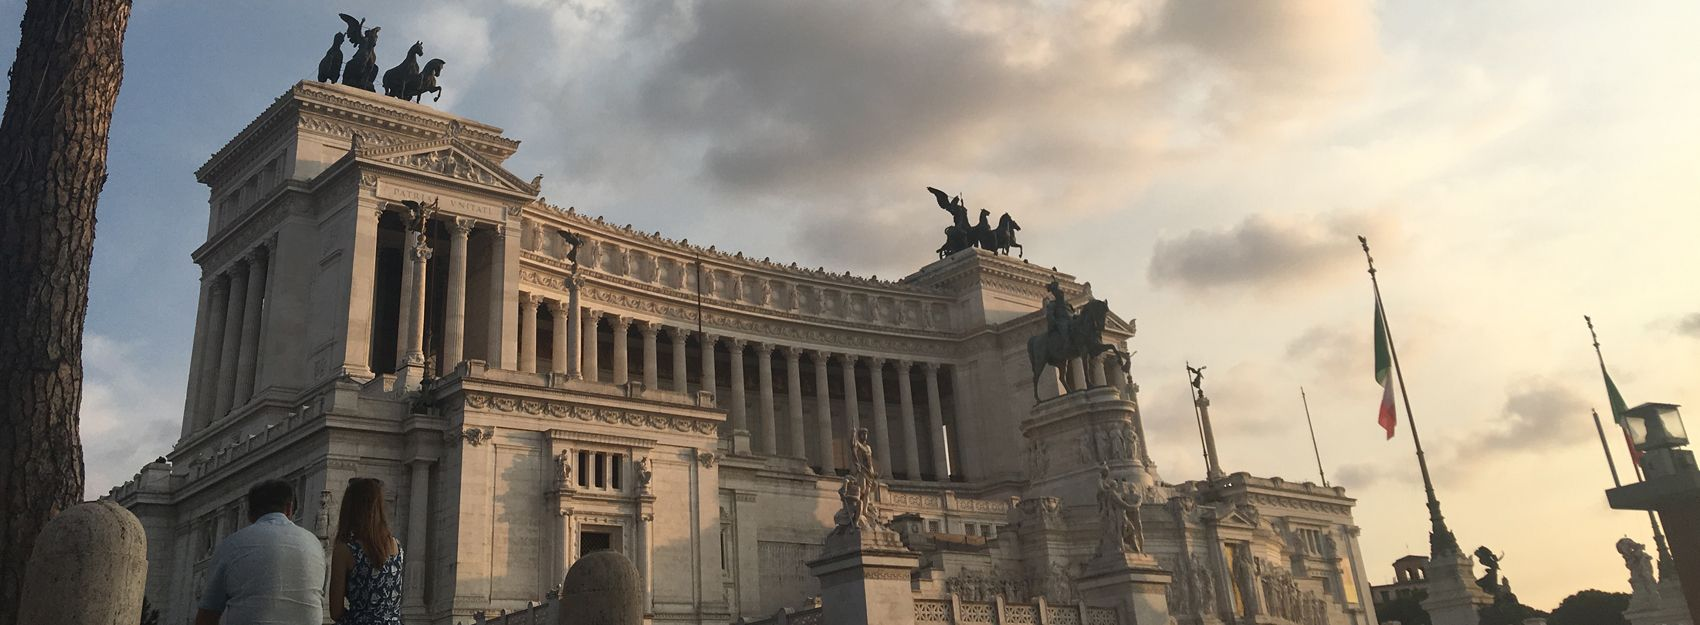 Monumento Nazionale in Rome with Italian Flag